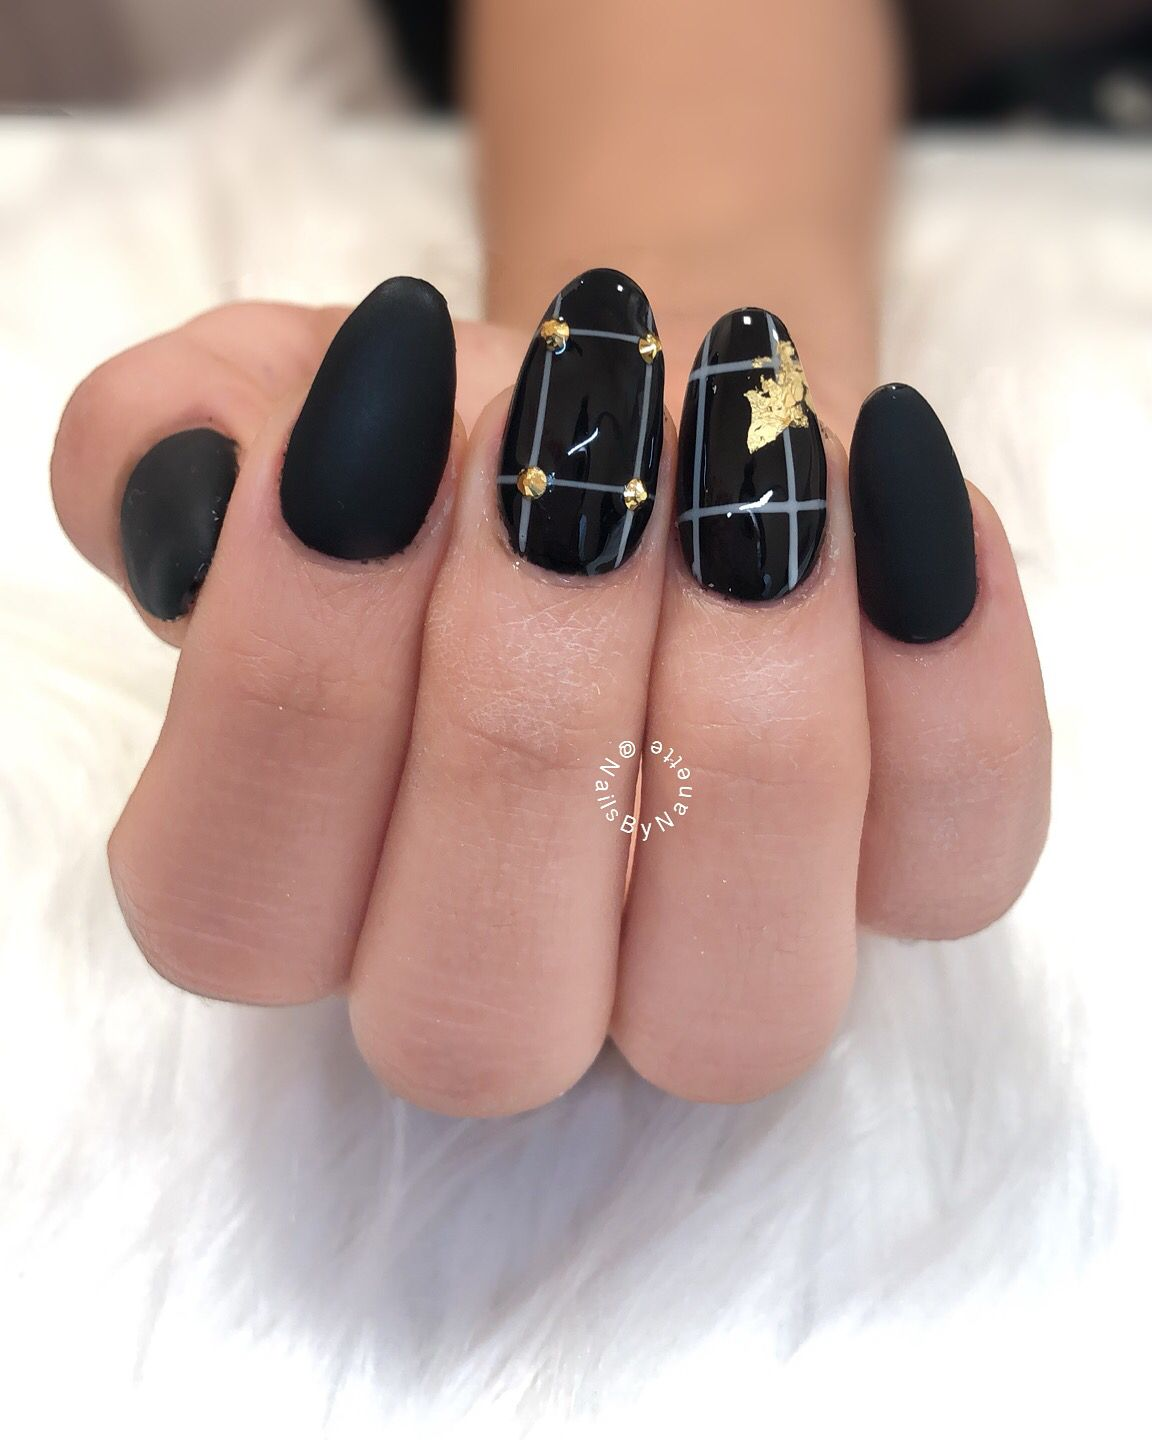 Pin by Nanette Graham on Nailed It   Nails, Beauty, Painting